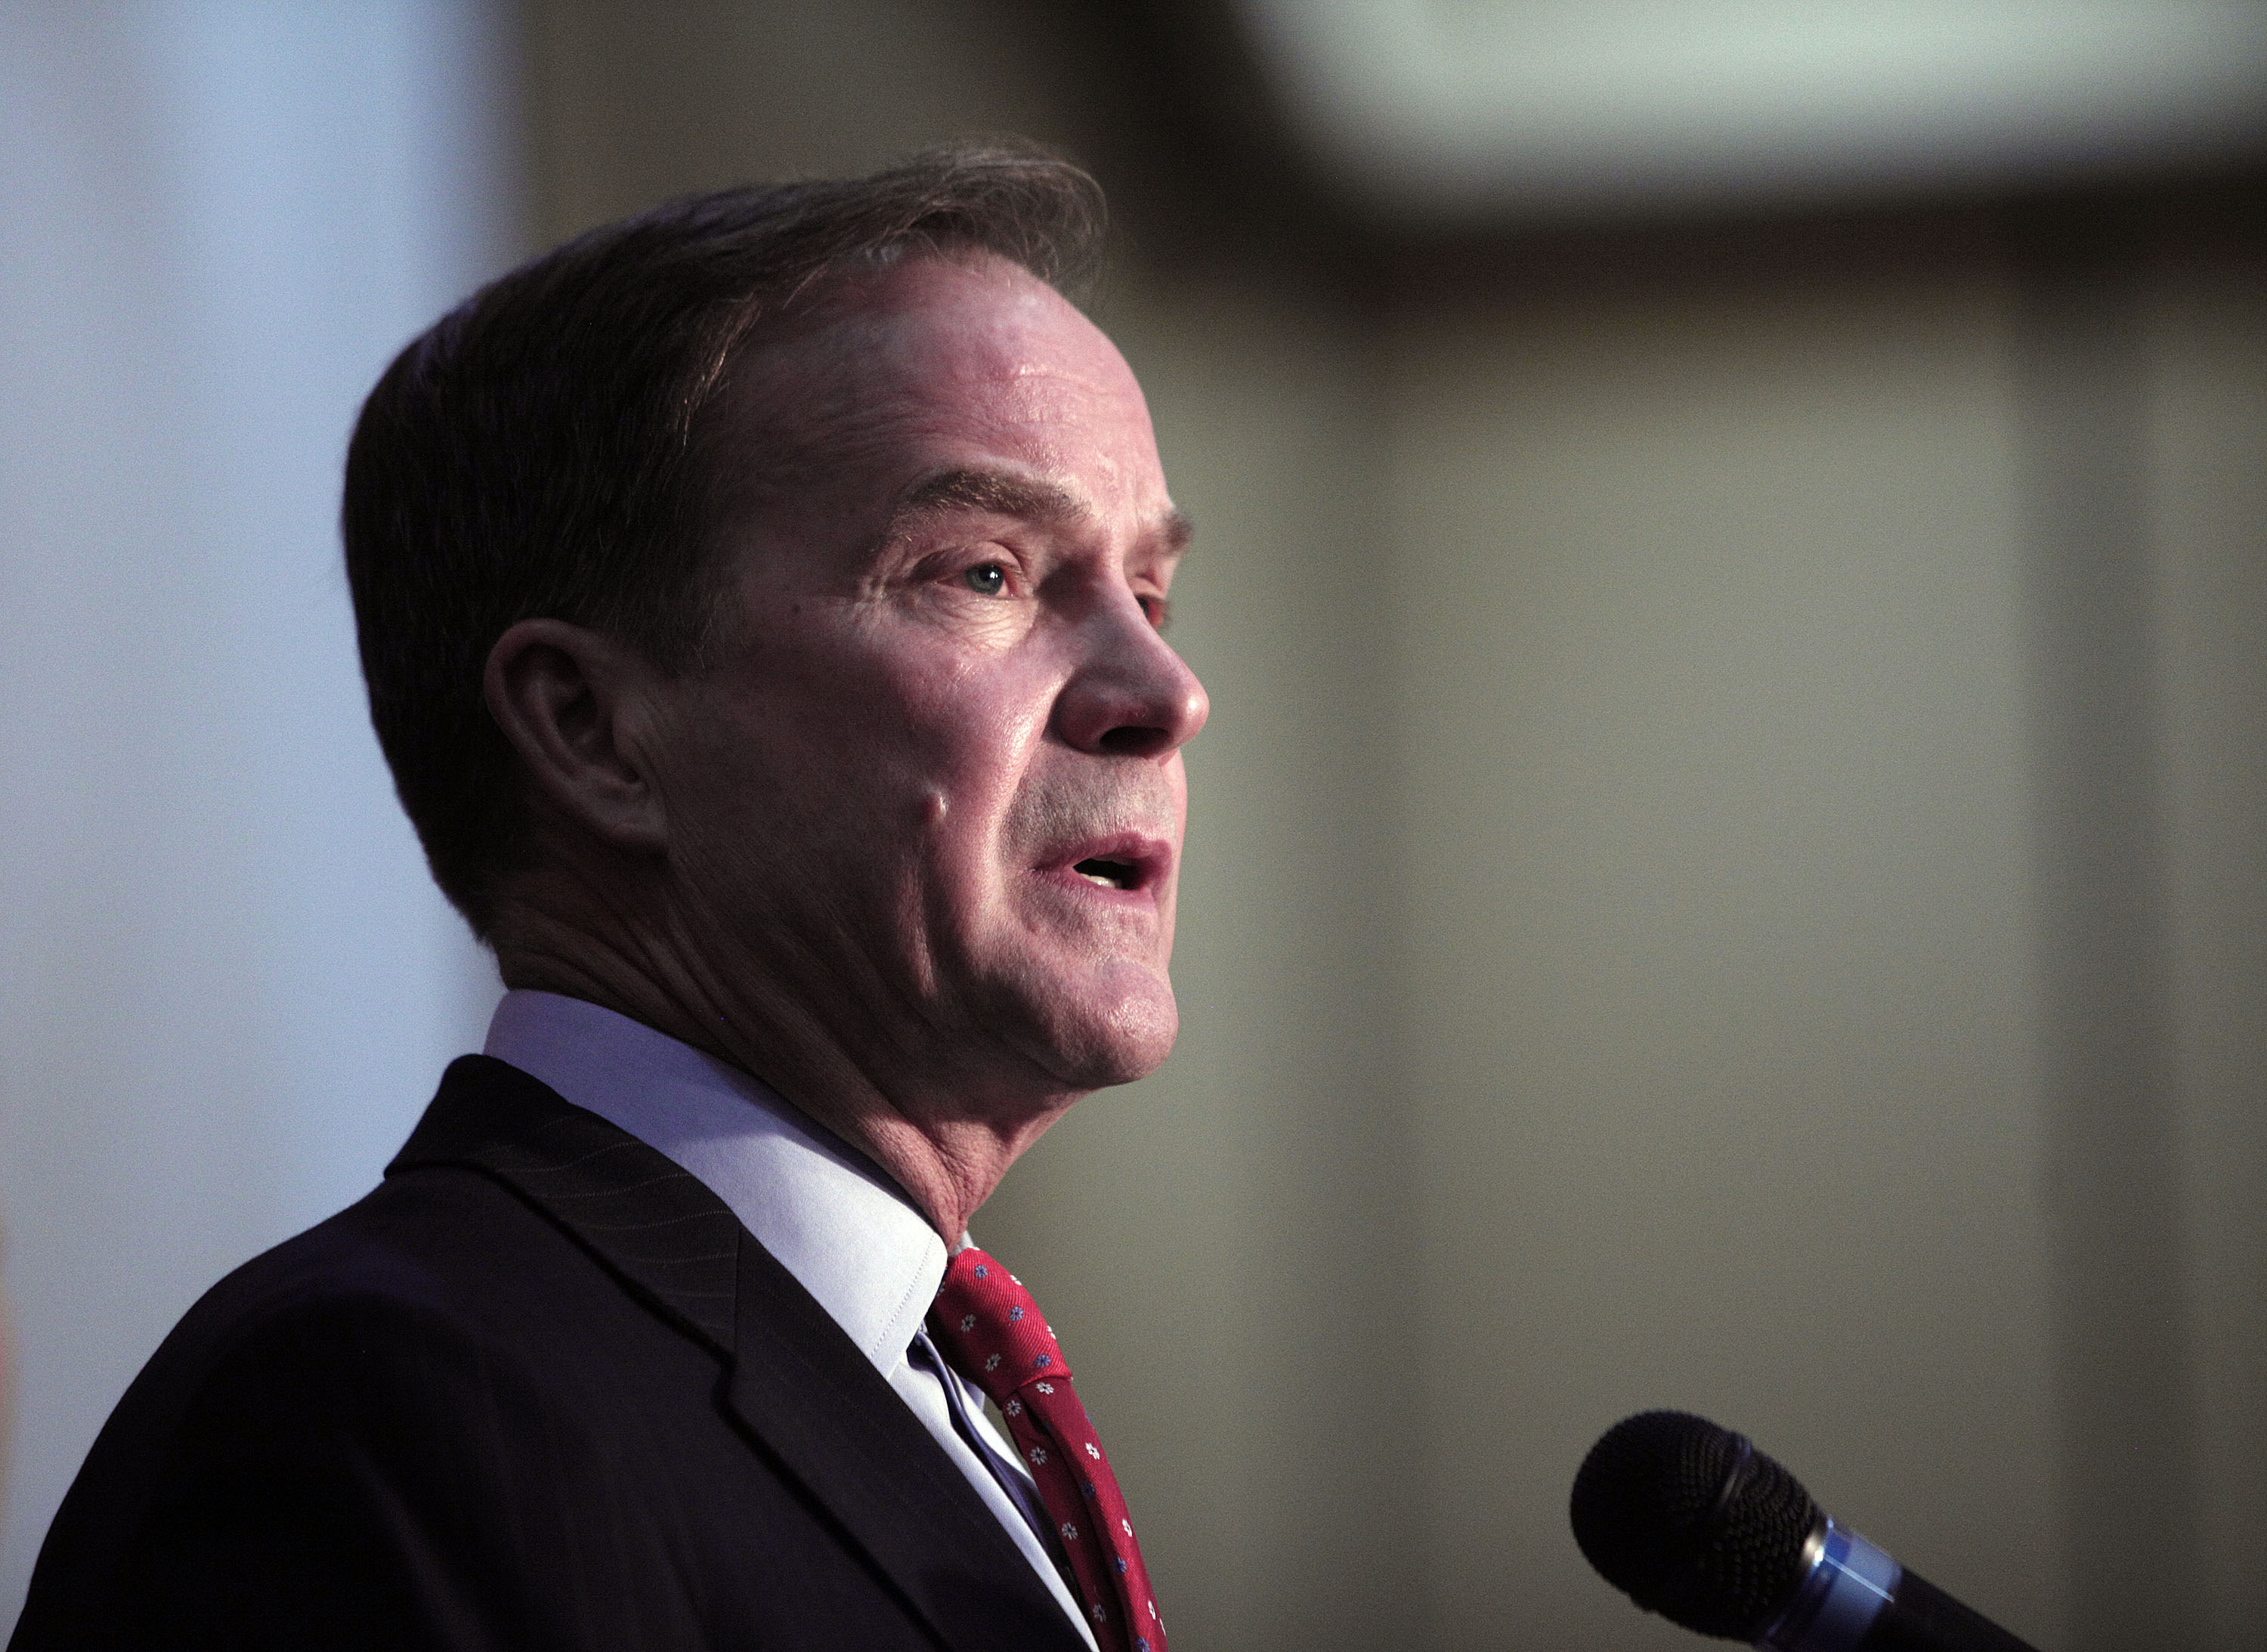 Michigan Attorney General Bill Schuette announces that he filed 13 felony charges and 5 misdemeanor charges against two state officials and one city official as a result of their actions in  Flint's lead water contamination crises April 20, 2016 in Flint, Michigan.